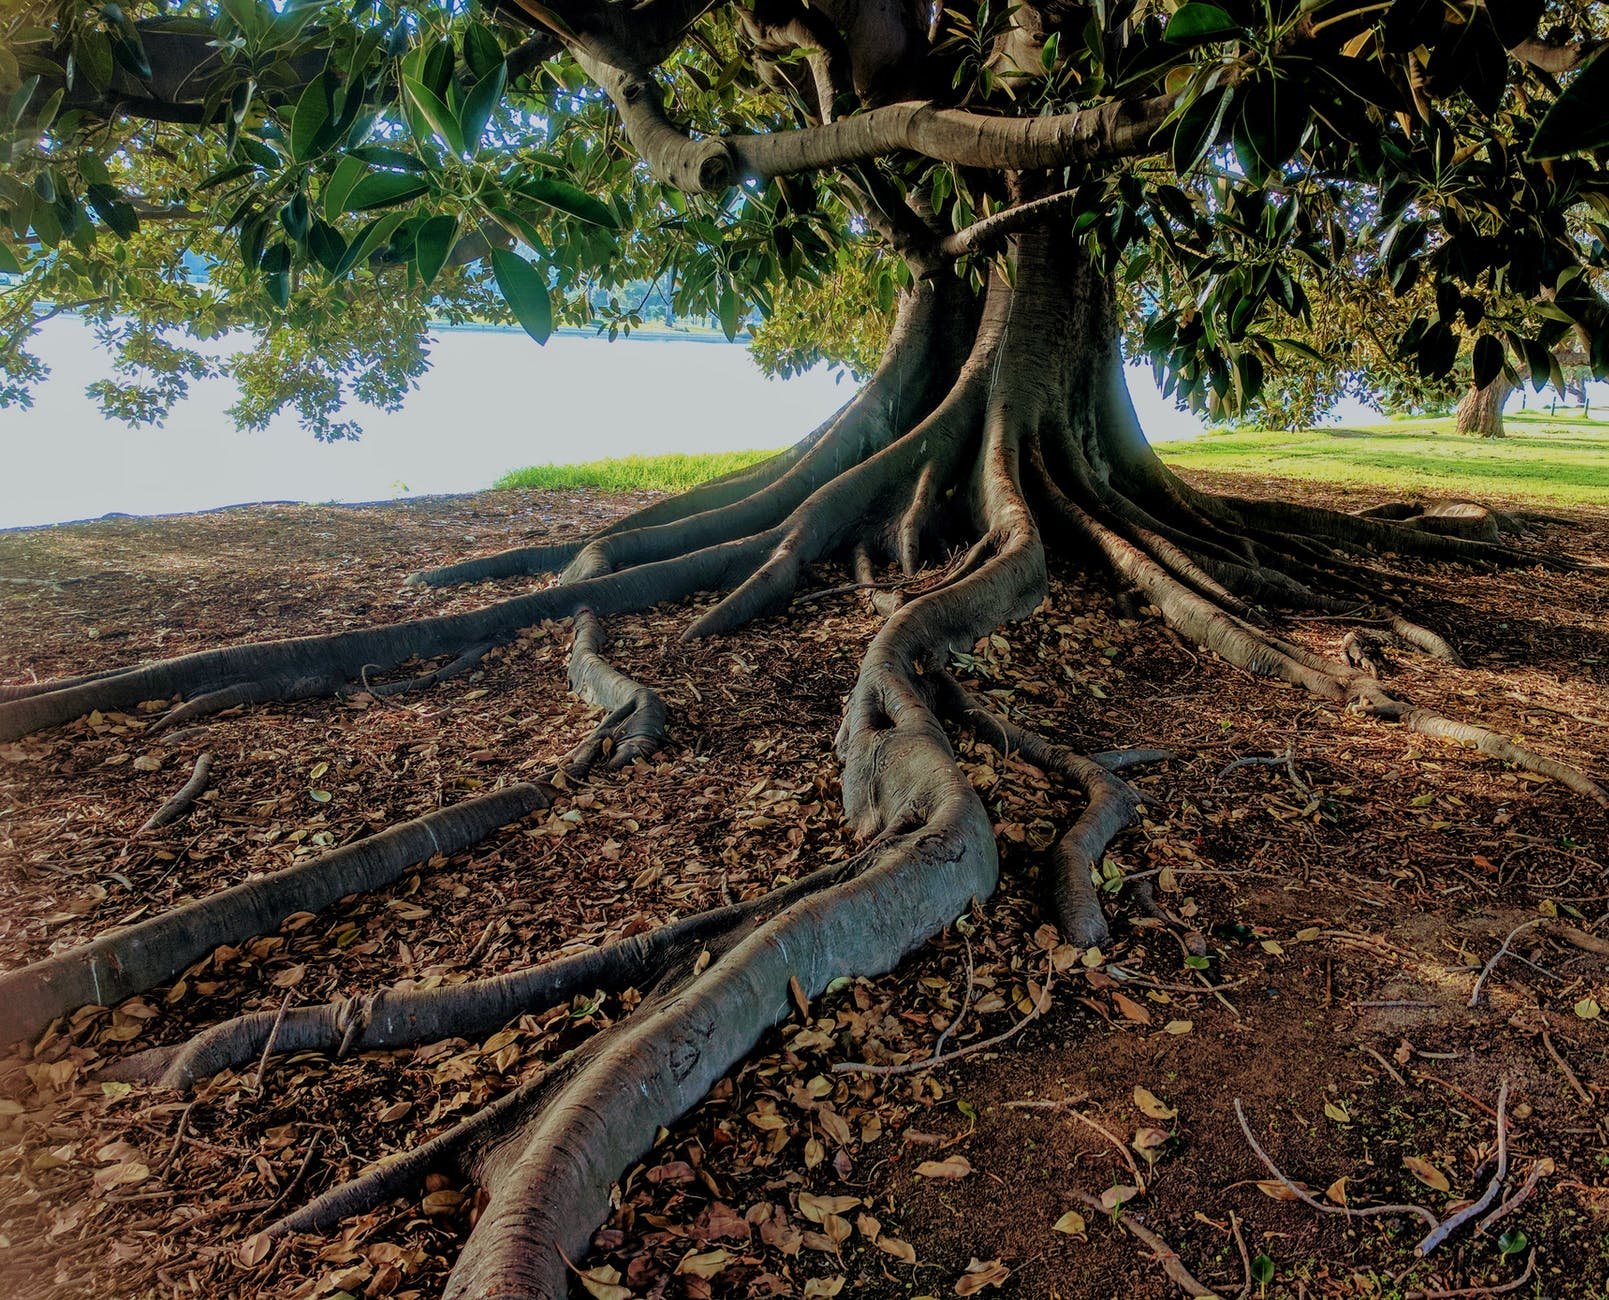 tree with large root system